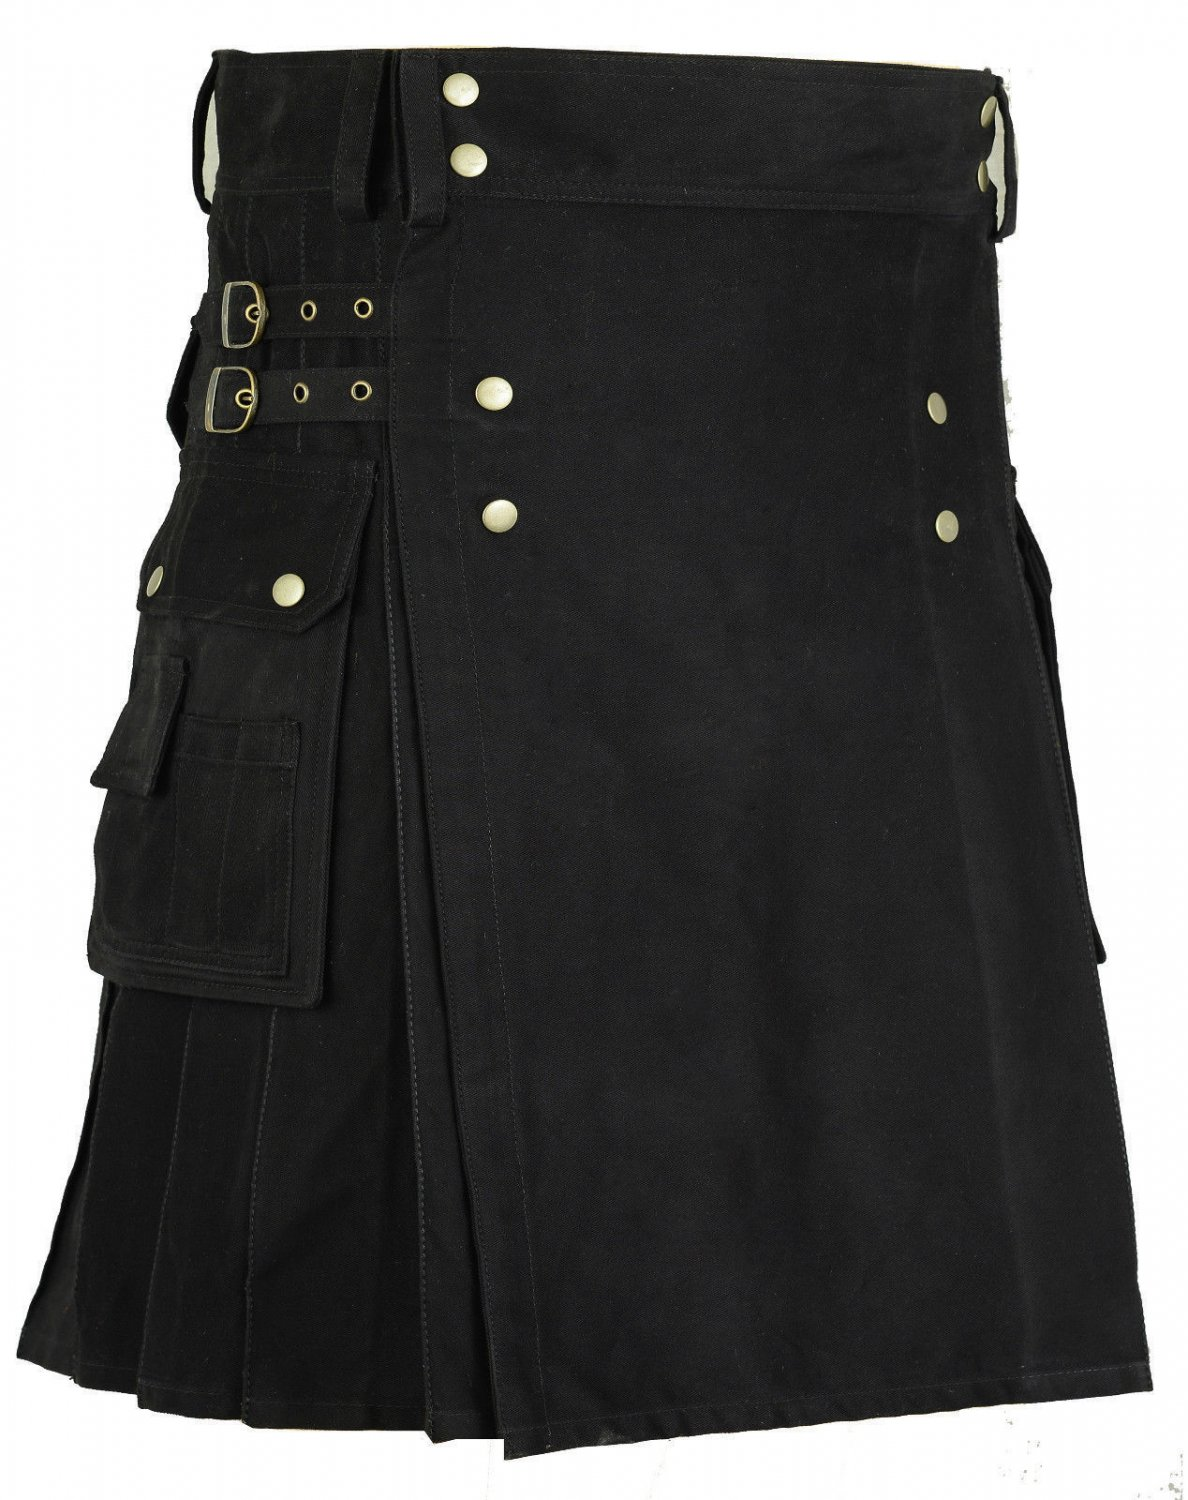 Size 34 Handmade Gothic Black Pure Cotton Kilt With Utility Side Cargo Pockets